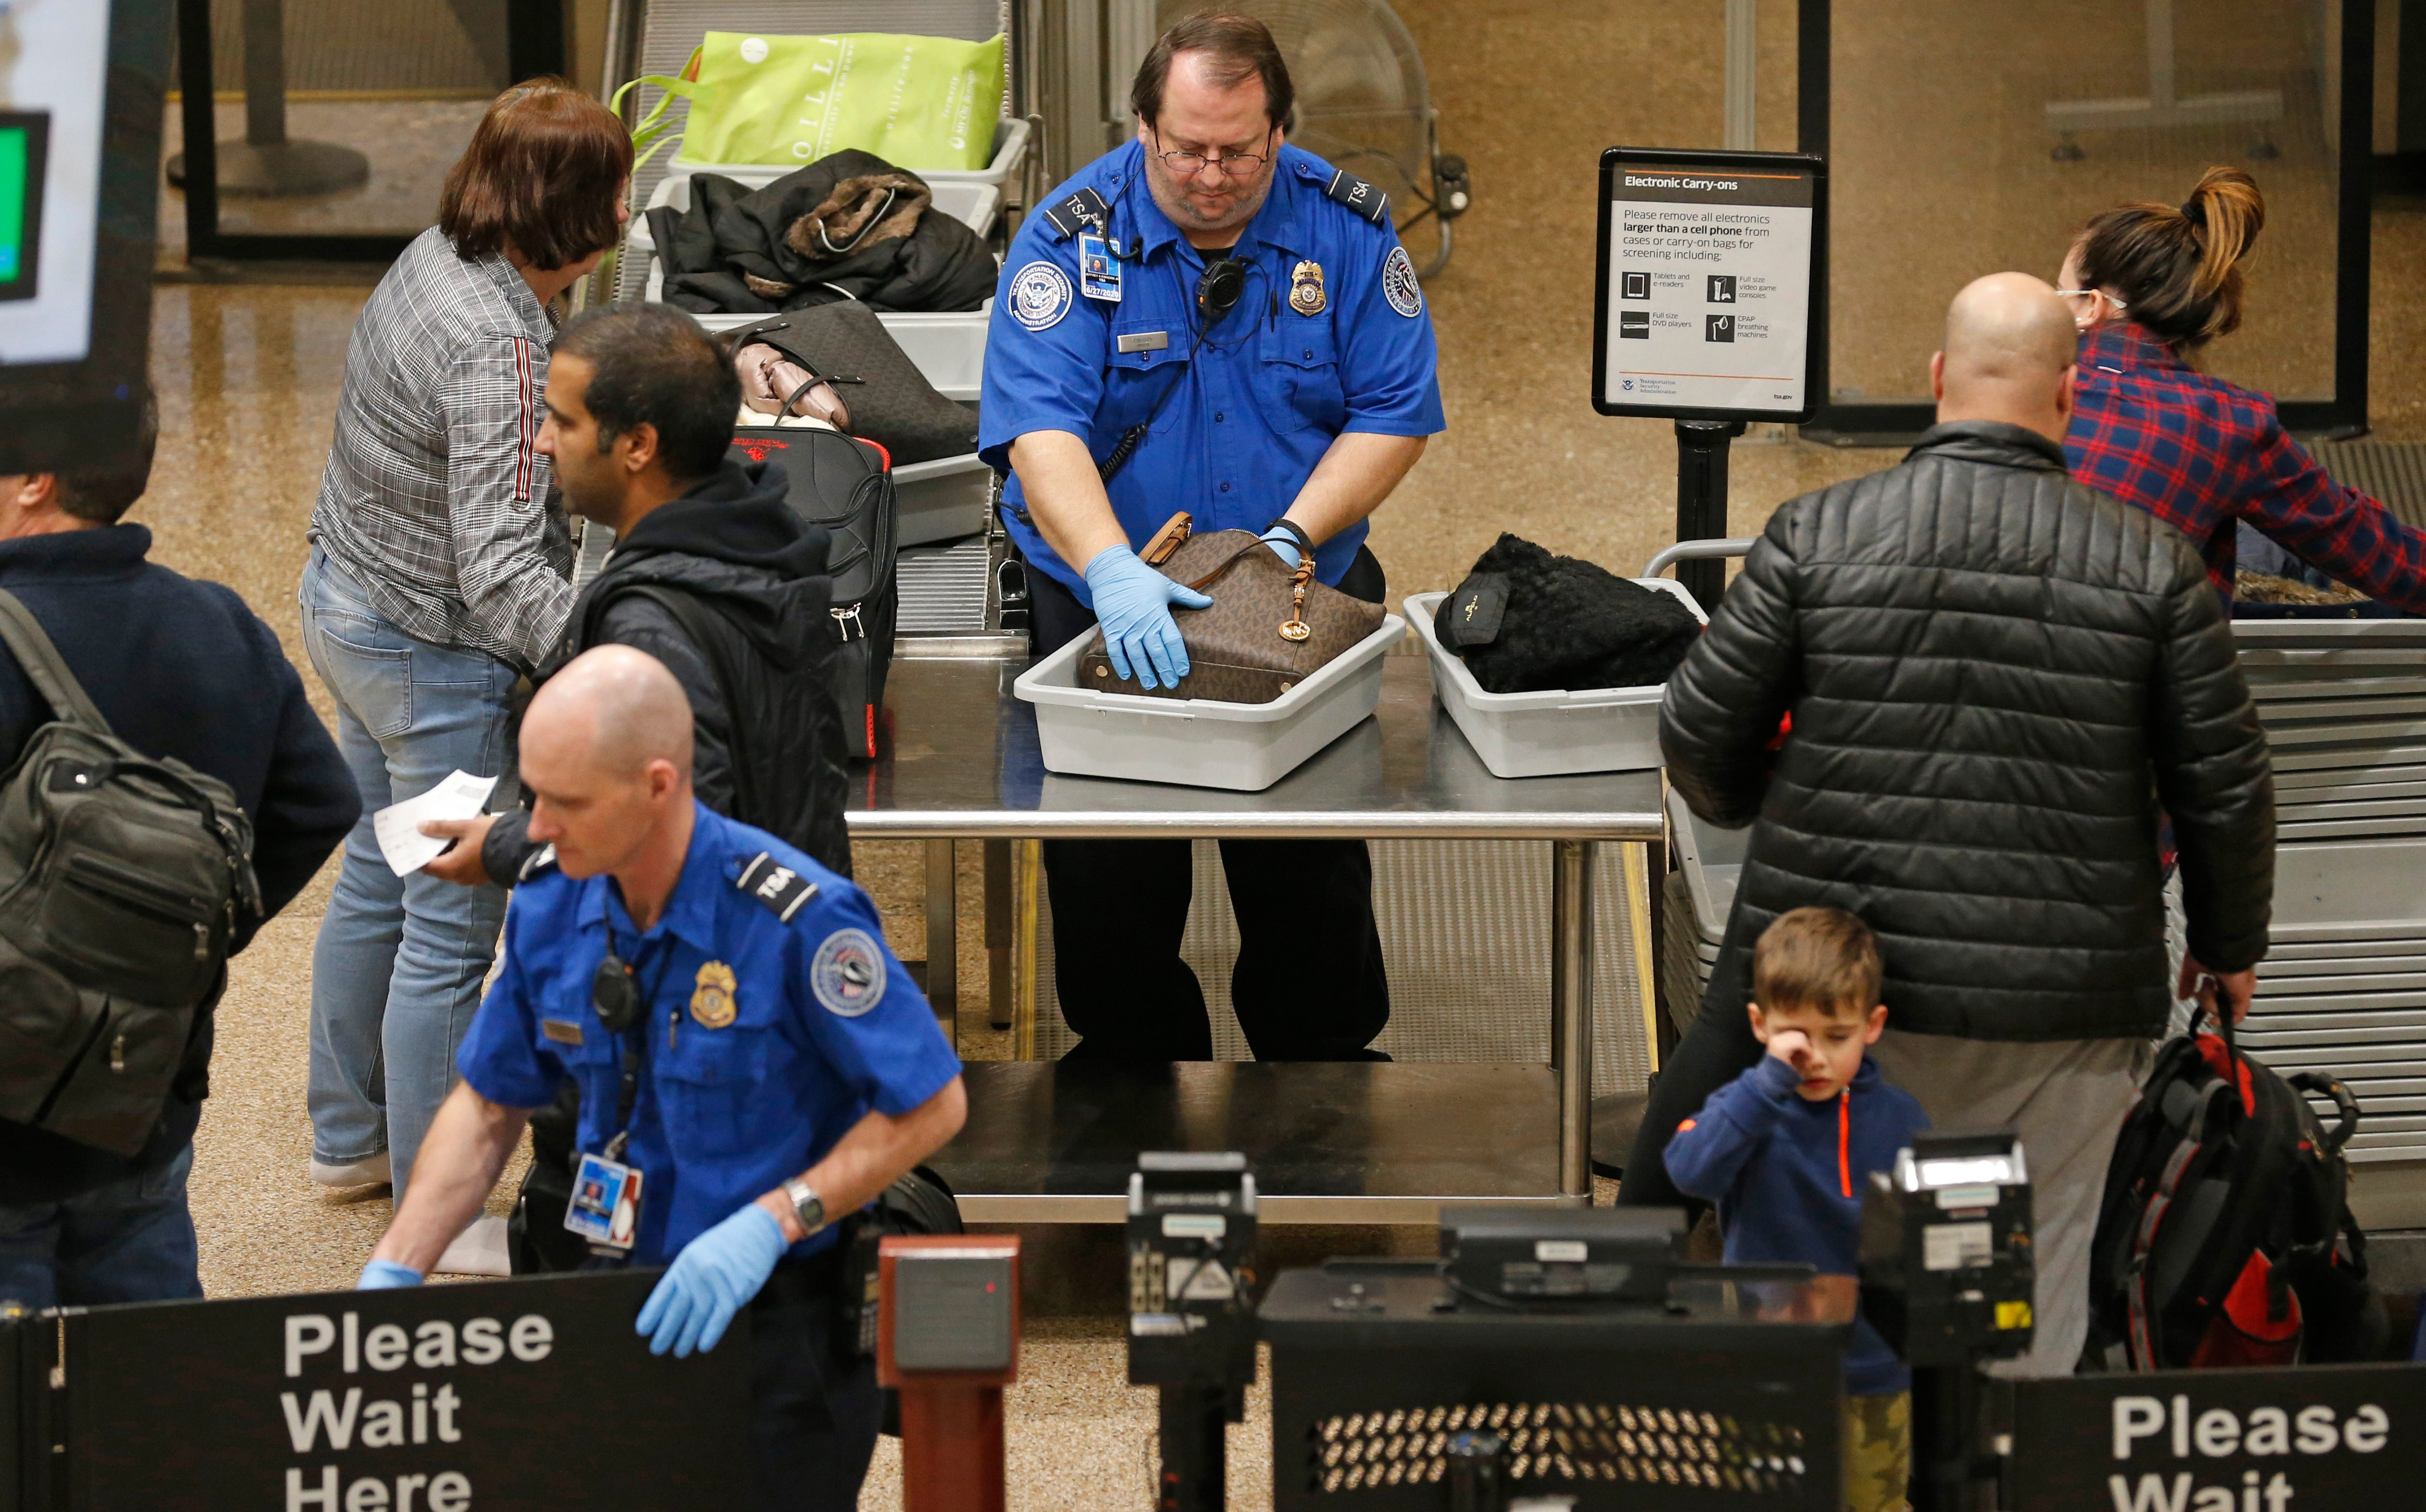 A TSA worker helps passengers at the Salt Lake City International Airport, Wednesday, Jan. 16, 2019, in Salt Lake City. The government shutdown has generated an outpouring of generosity to TSA agents and other federal employees who are working without pay. In Salt Lake City, airport officials treated workers from the TSA, FAA and Customs and Border Protection to a free barbecue lunch as a gesture to keep their spirits up during a difficult time.